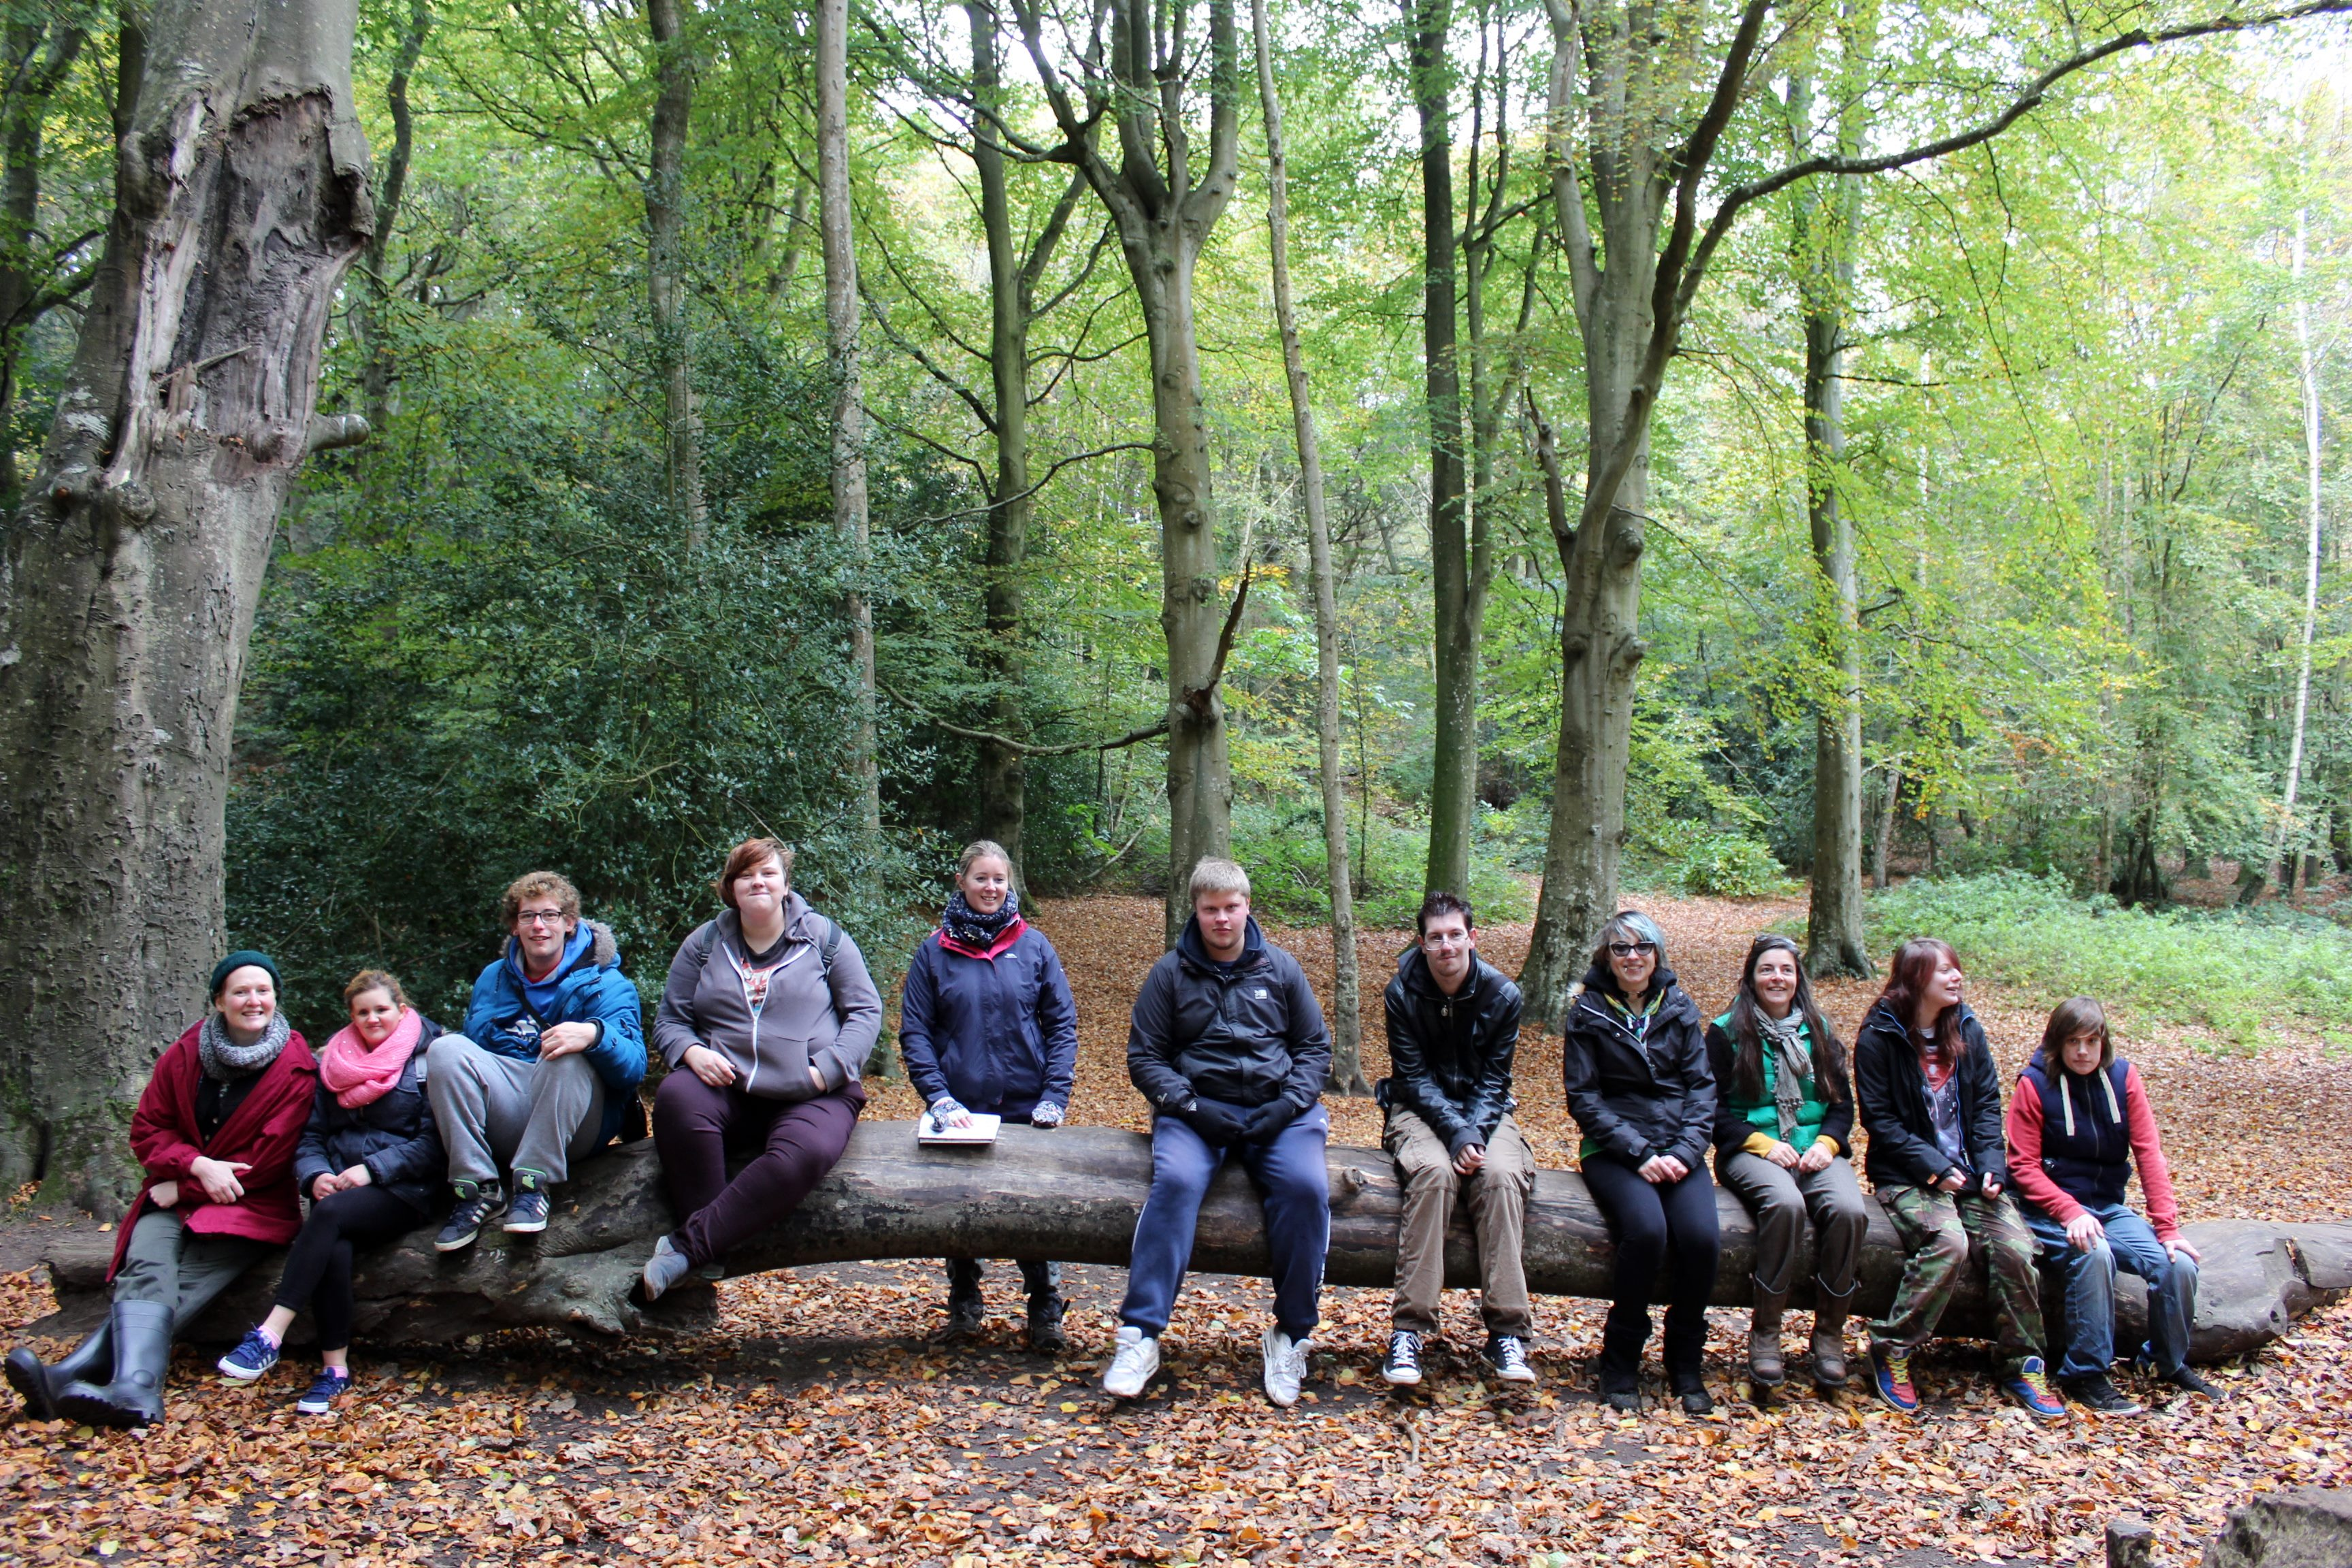 Pic-3.-Some-of-the-Green-Army-volunteers-on-autumn-walk-from-Branstone-Farm-to-Borthwood-Copse.JPG#asset:2778